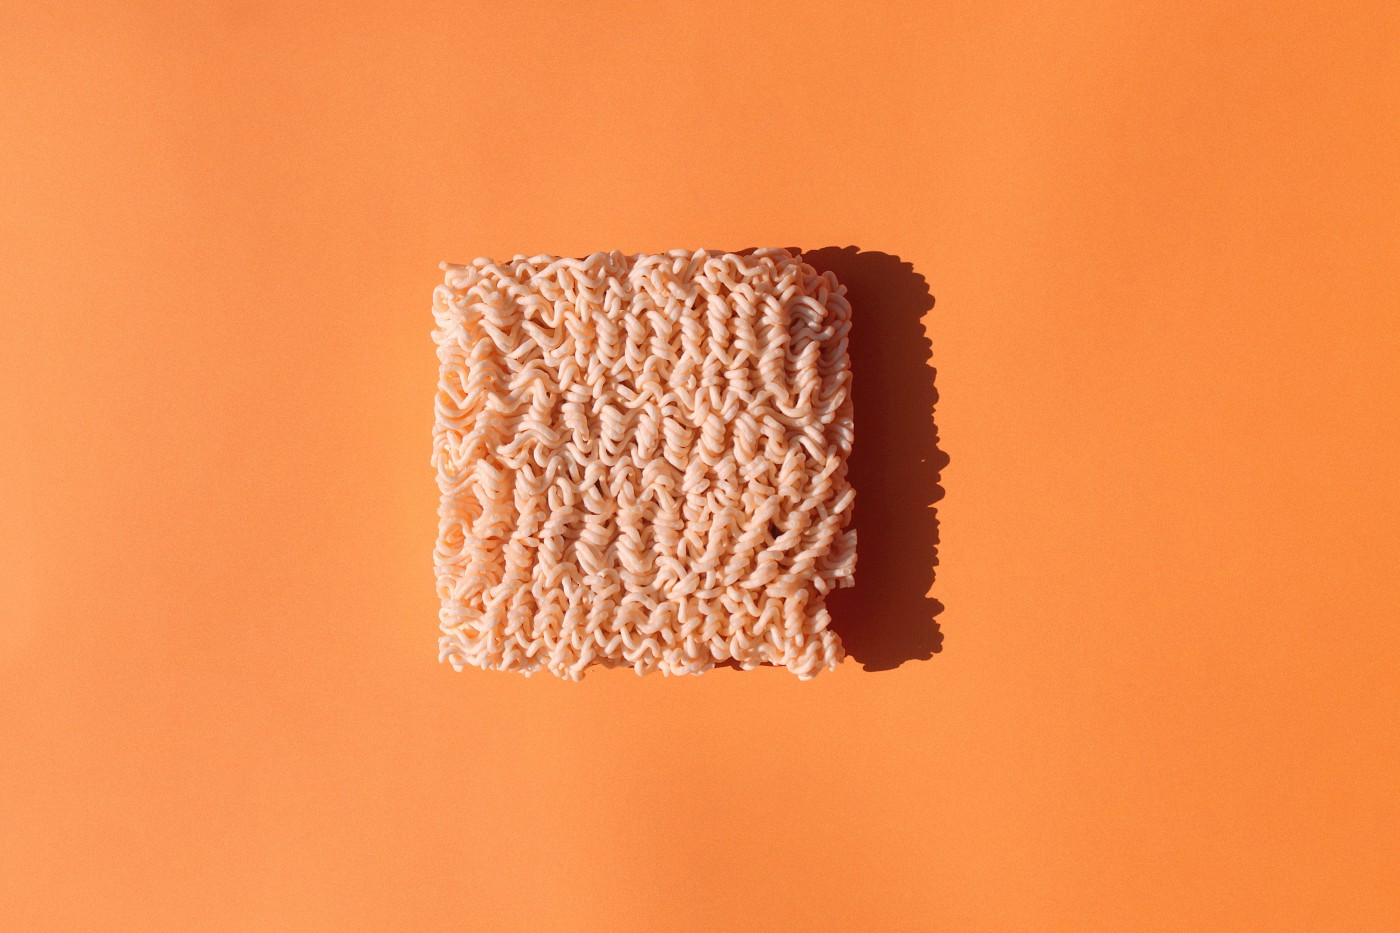 Two-minute noodles against an orange background.